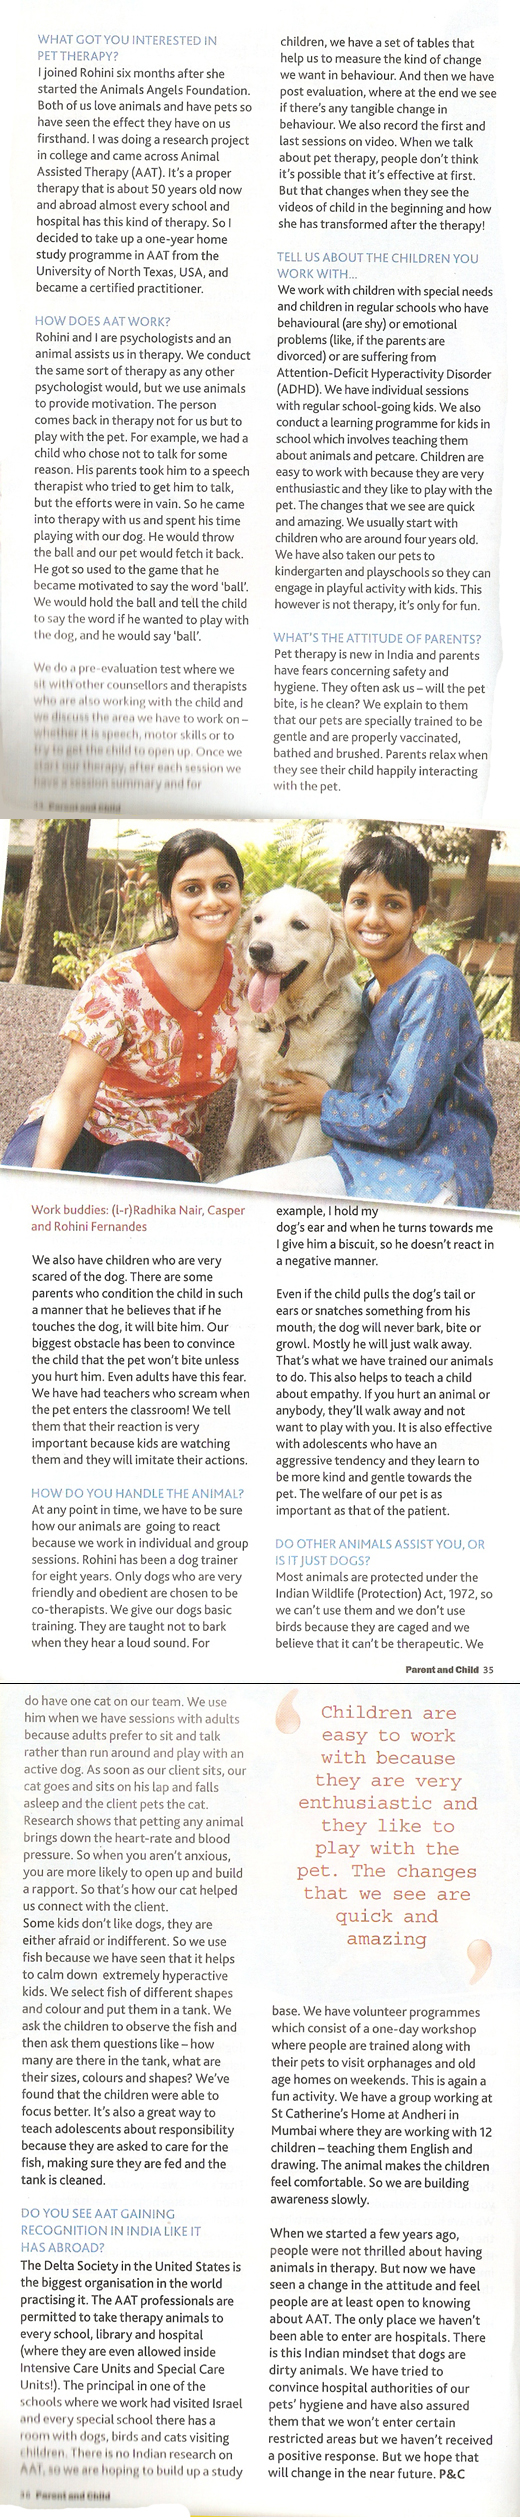 Eurokids Parent & Child magazine article on Animal Angels Foundation - March 2012